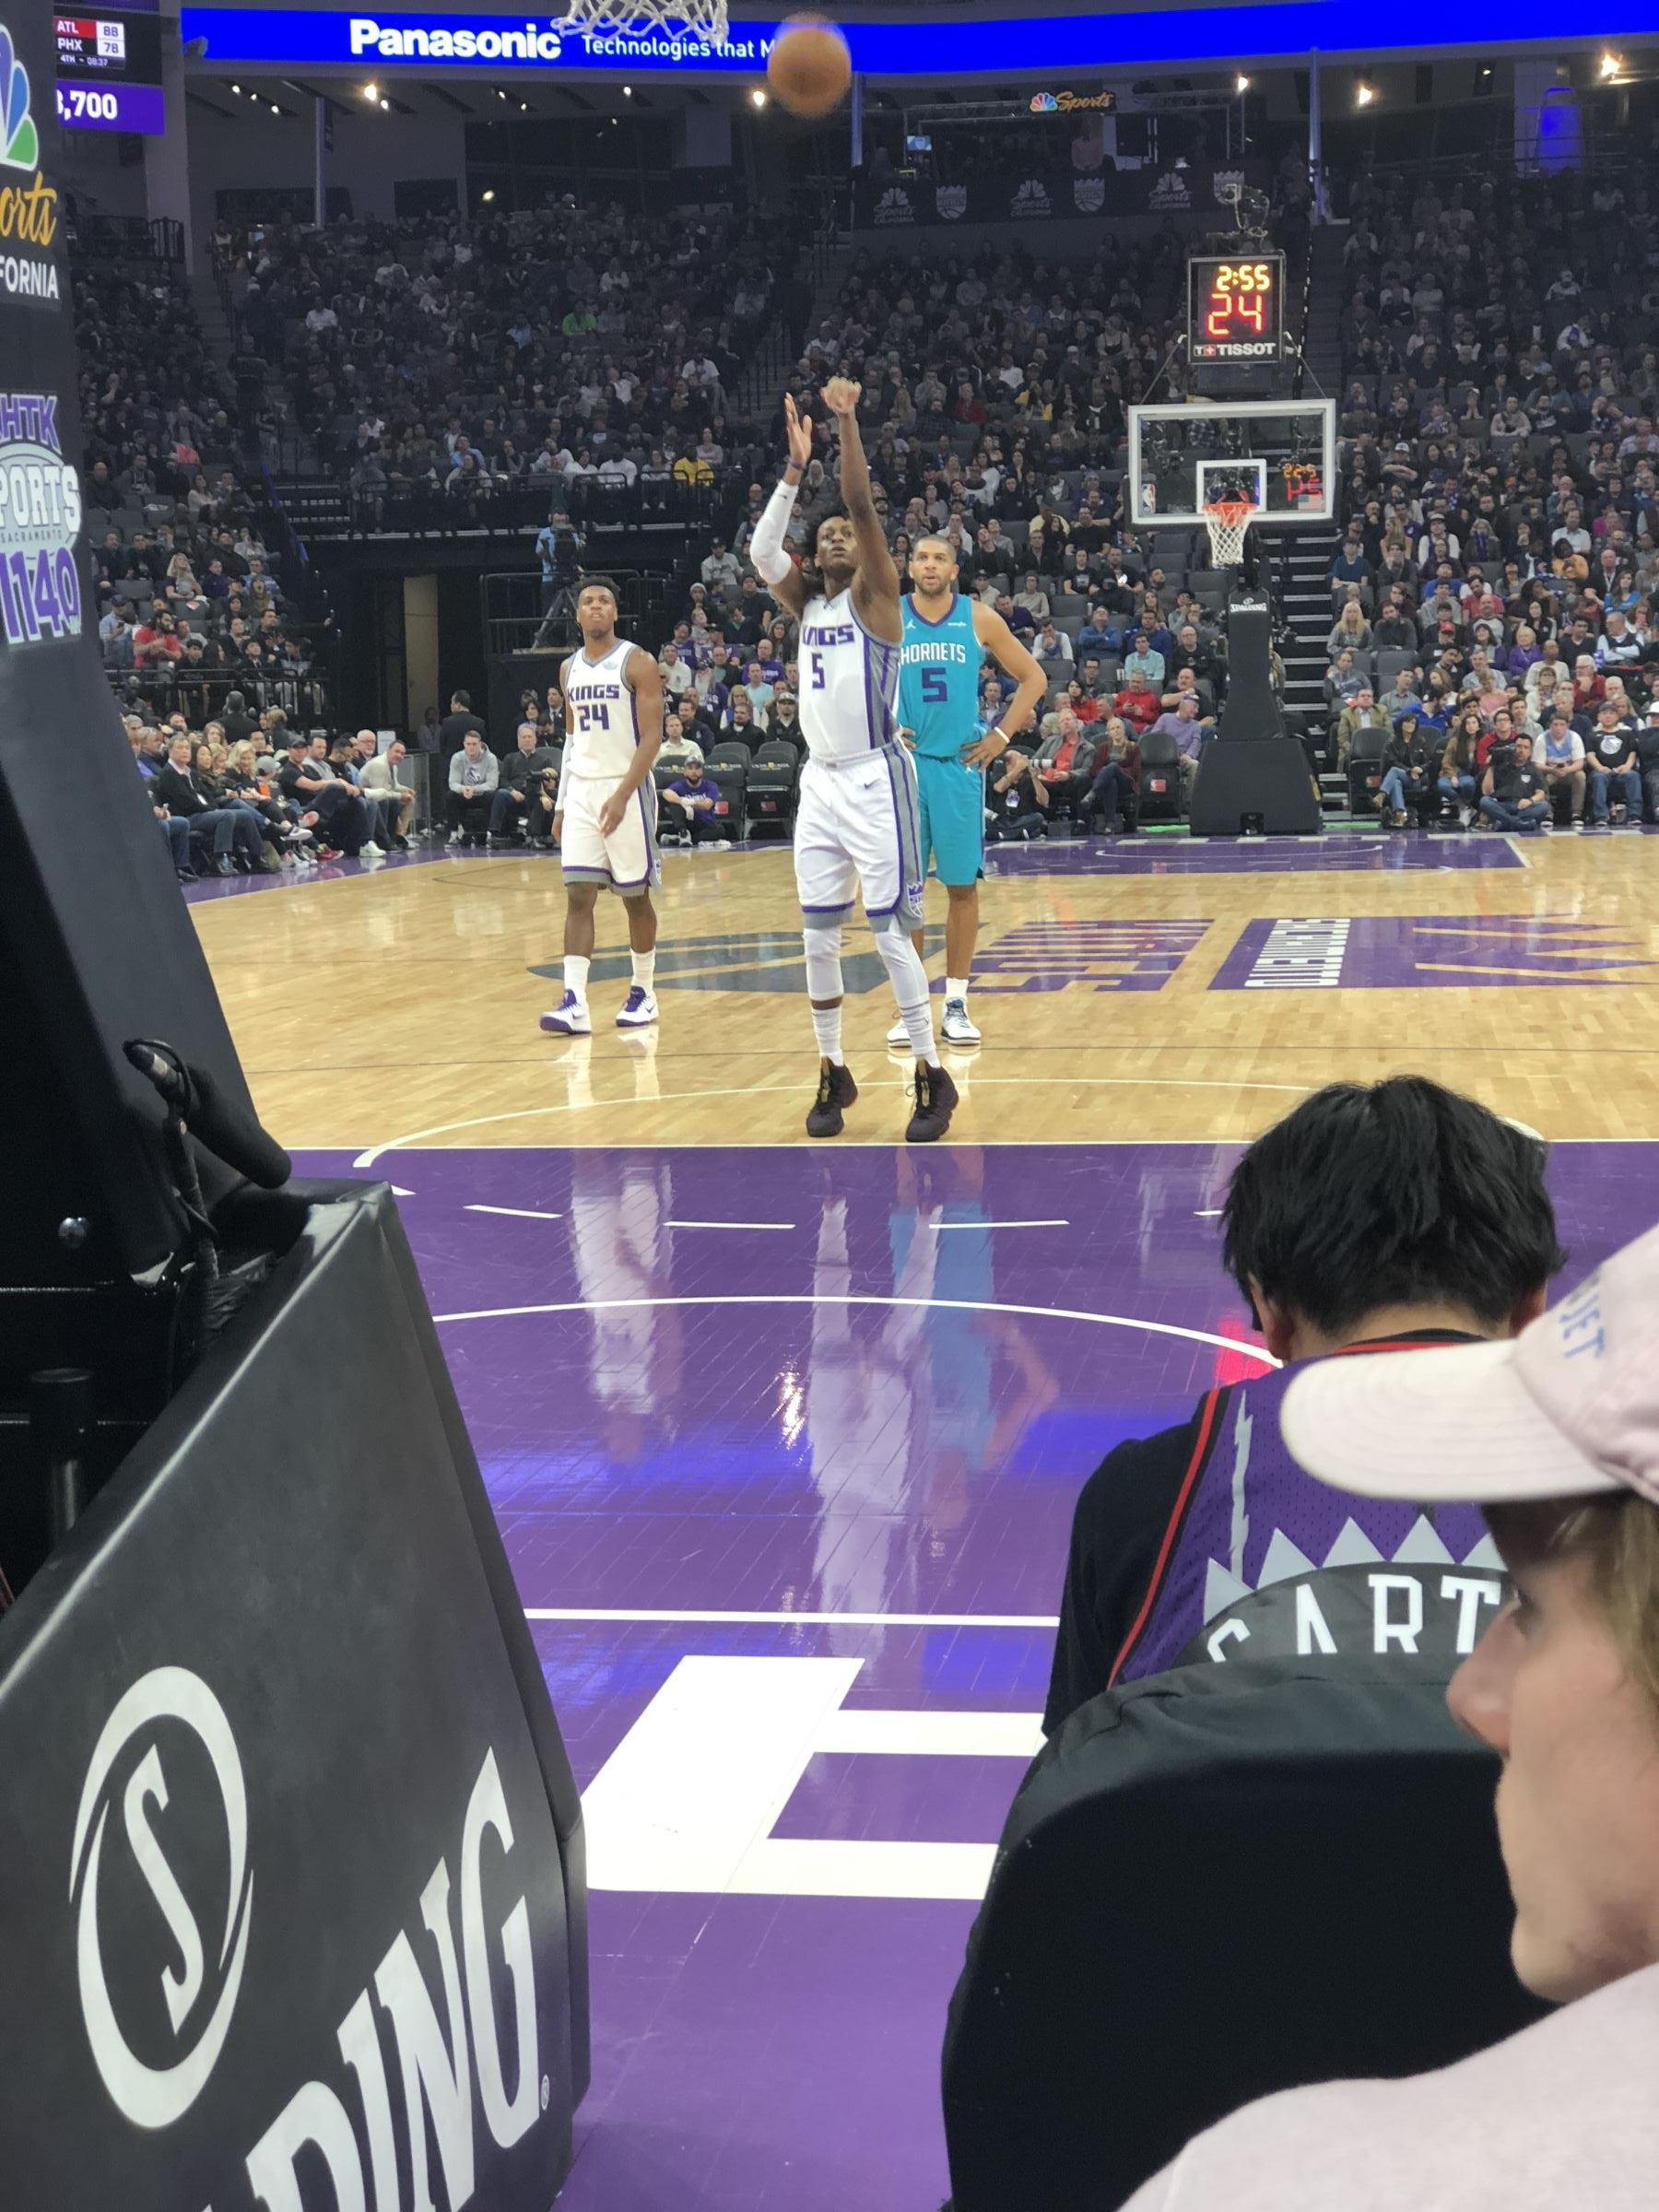 Courtside 4 seat view